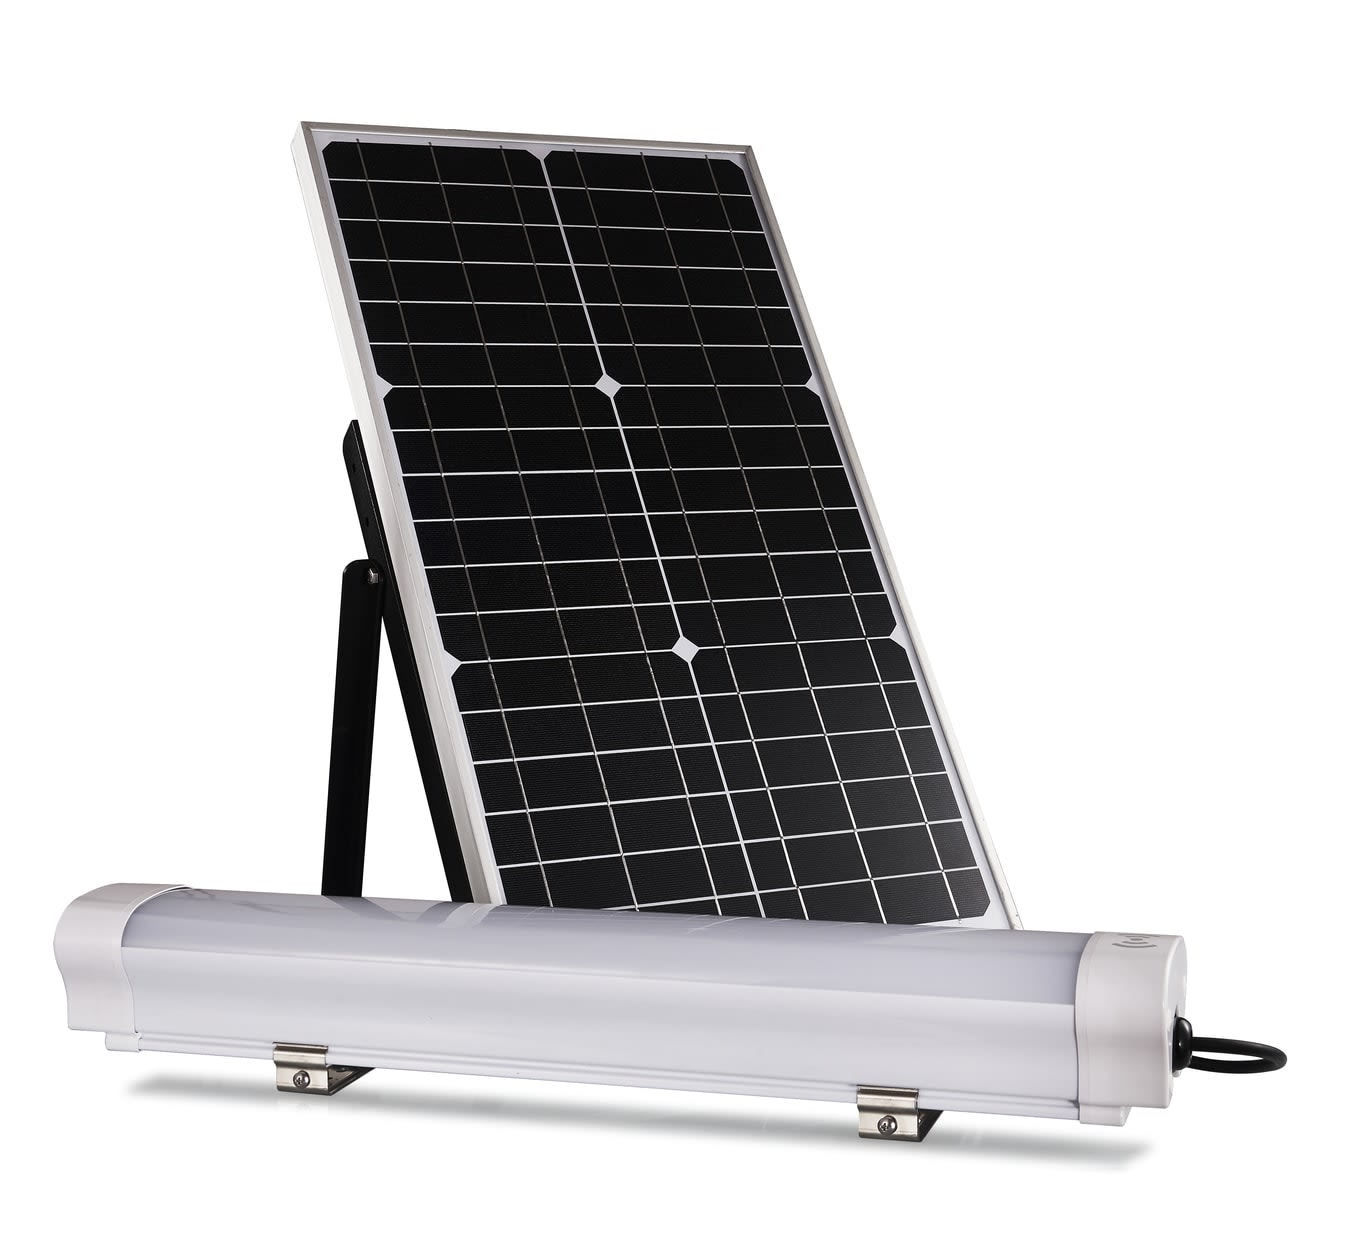 SolarPower Adjustable use and under surfaces